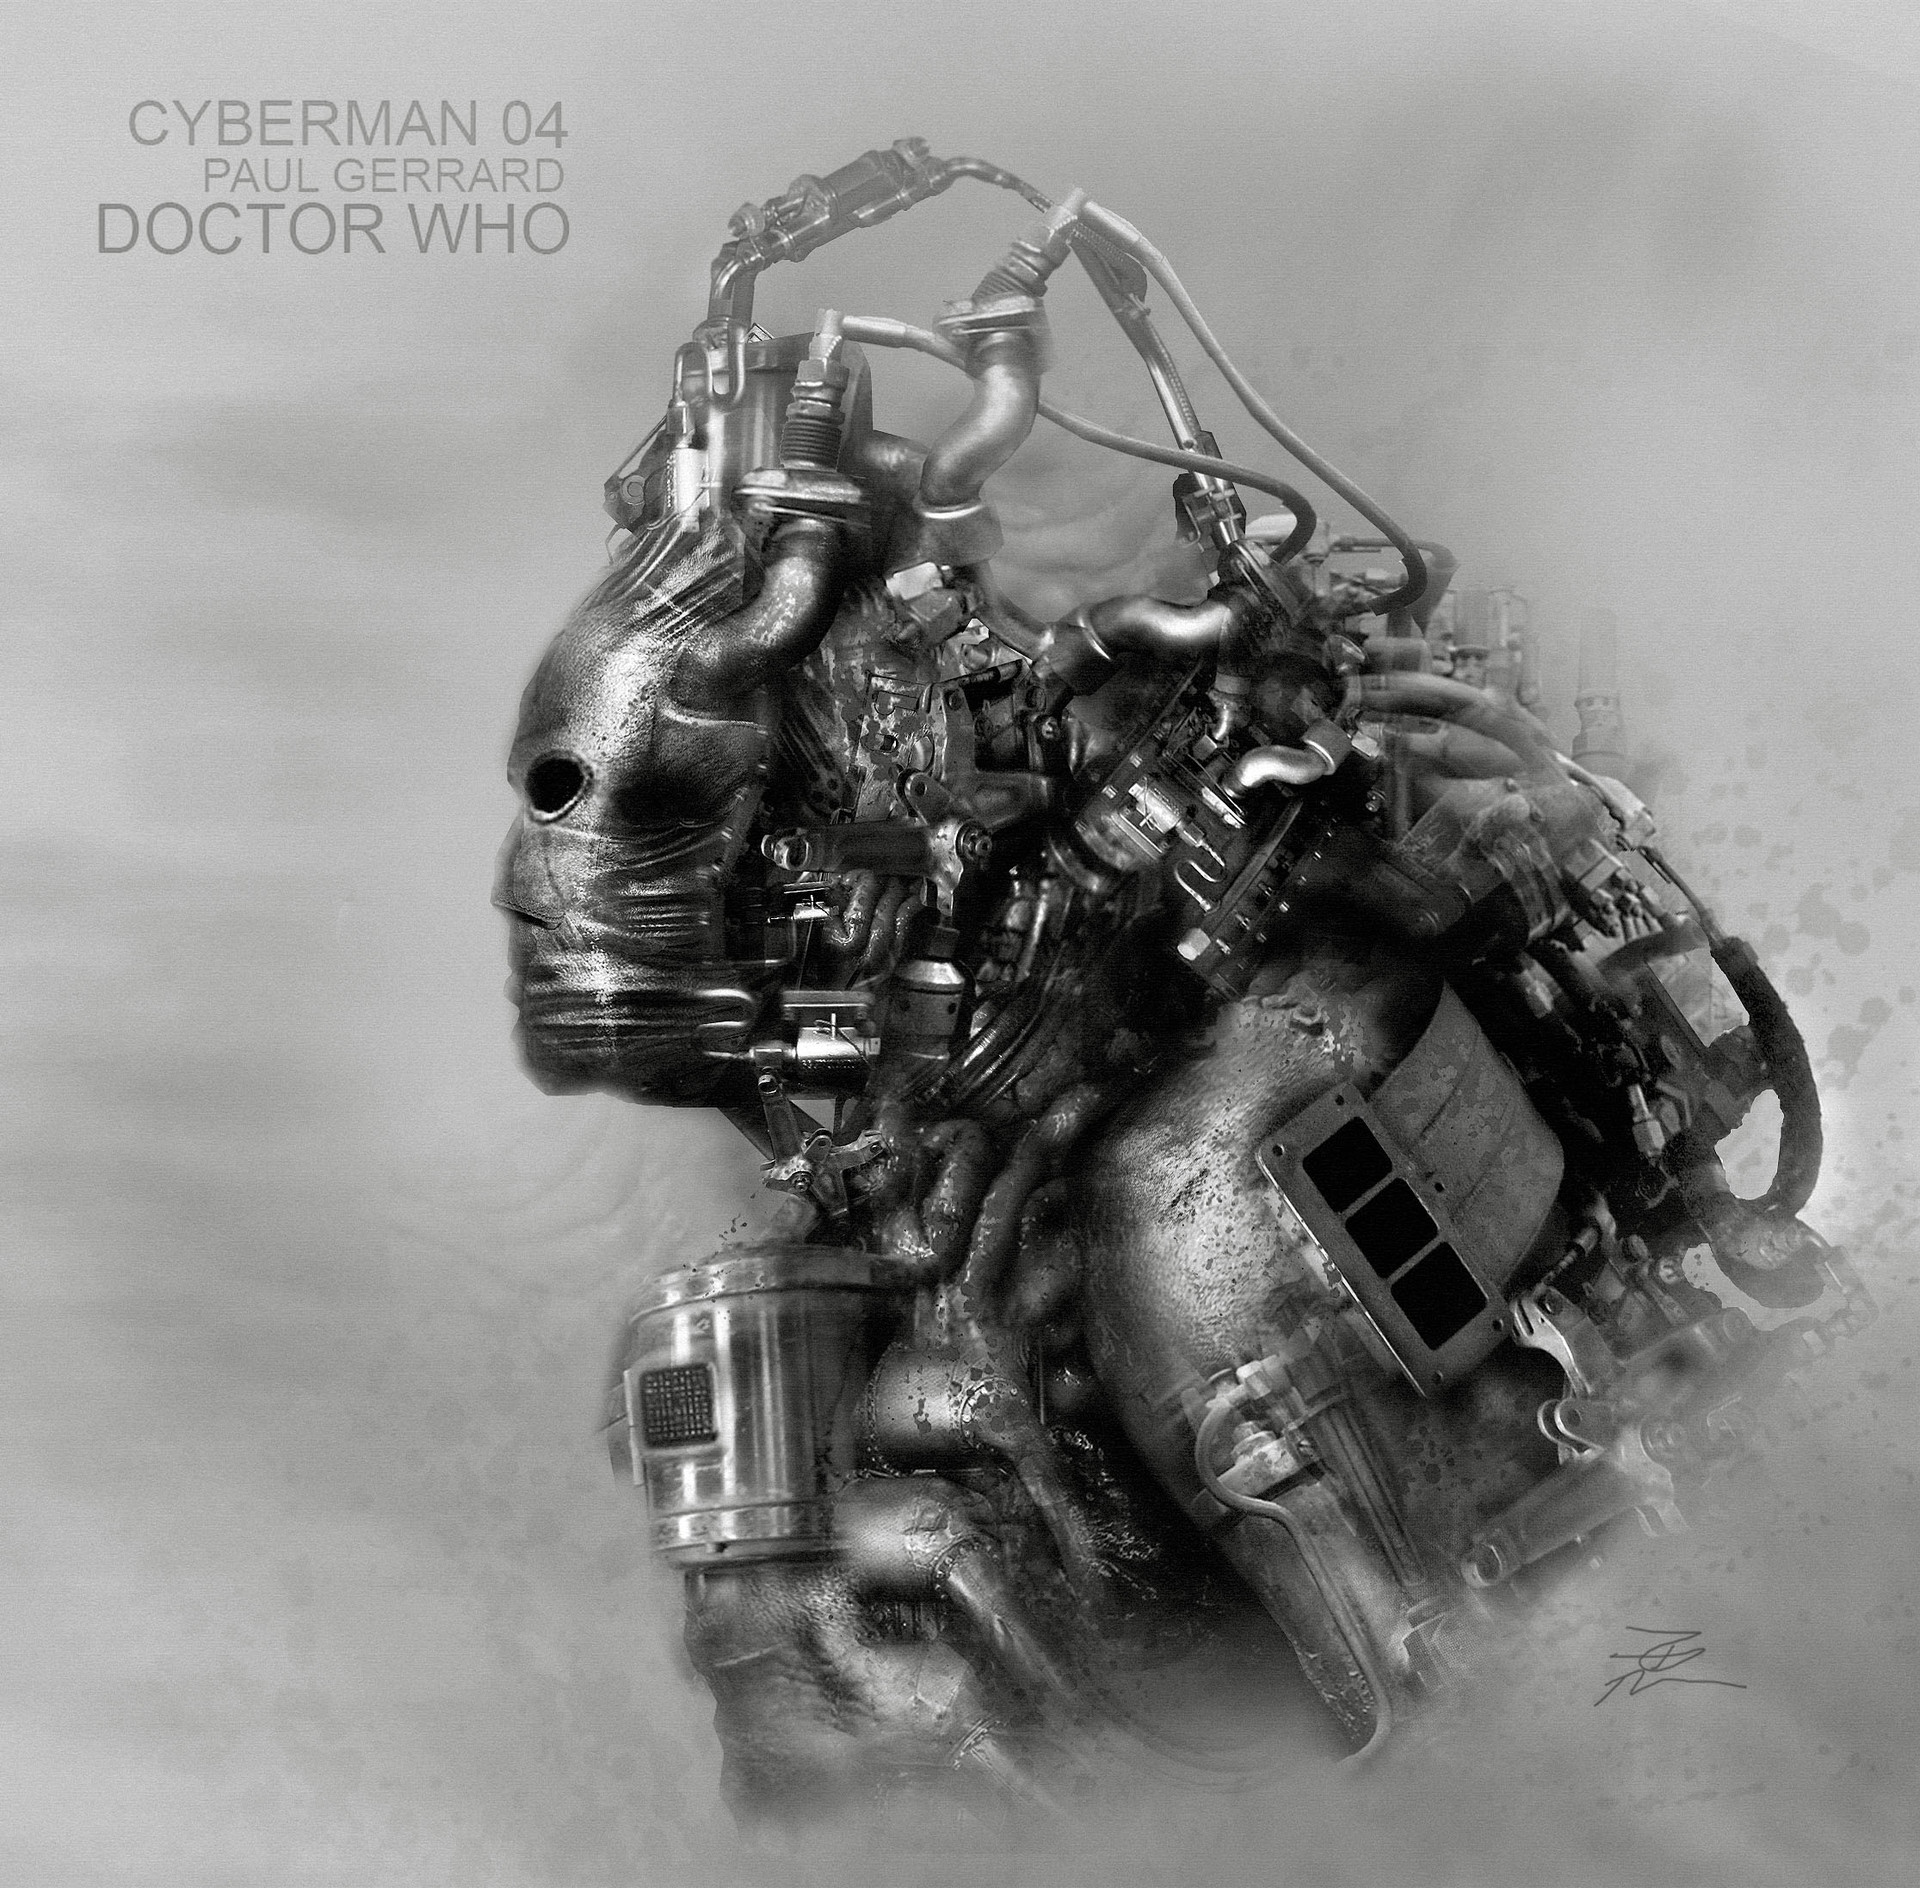 Paul gerrard cyberman 04